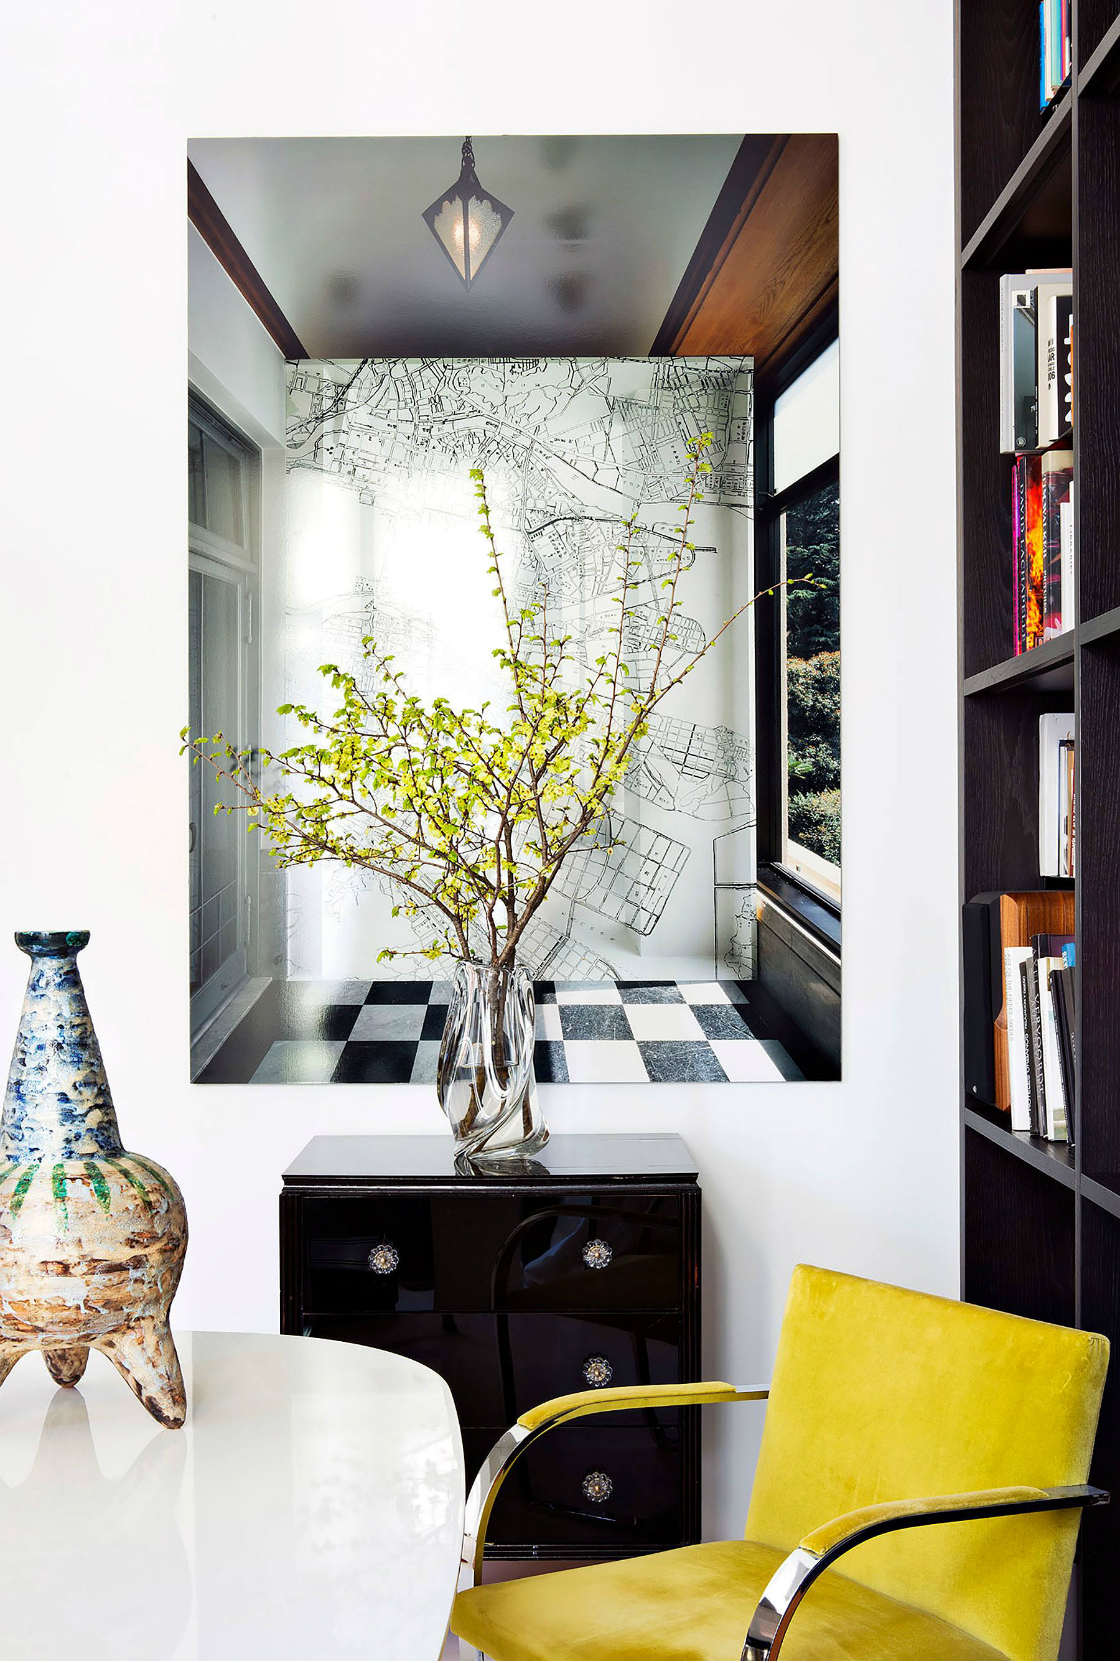 Be Inspired By This Eclectic Design by Jaime Beriestain Studio